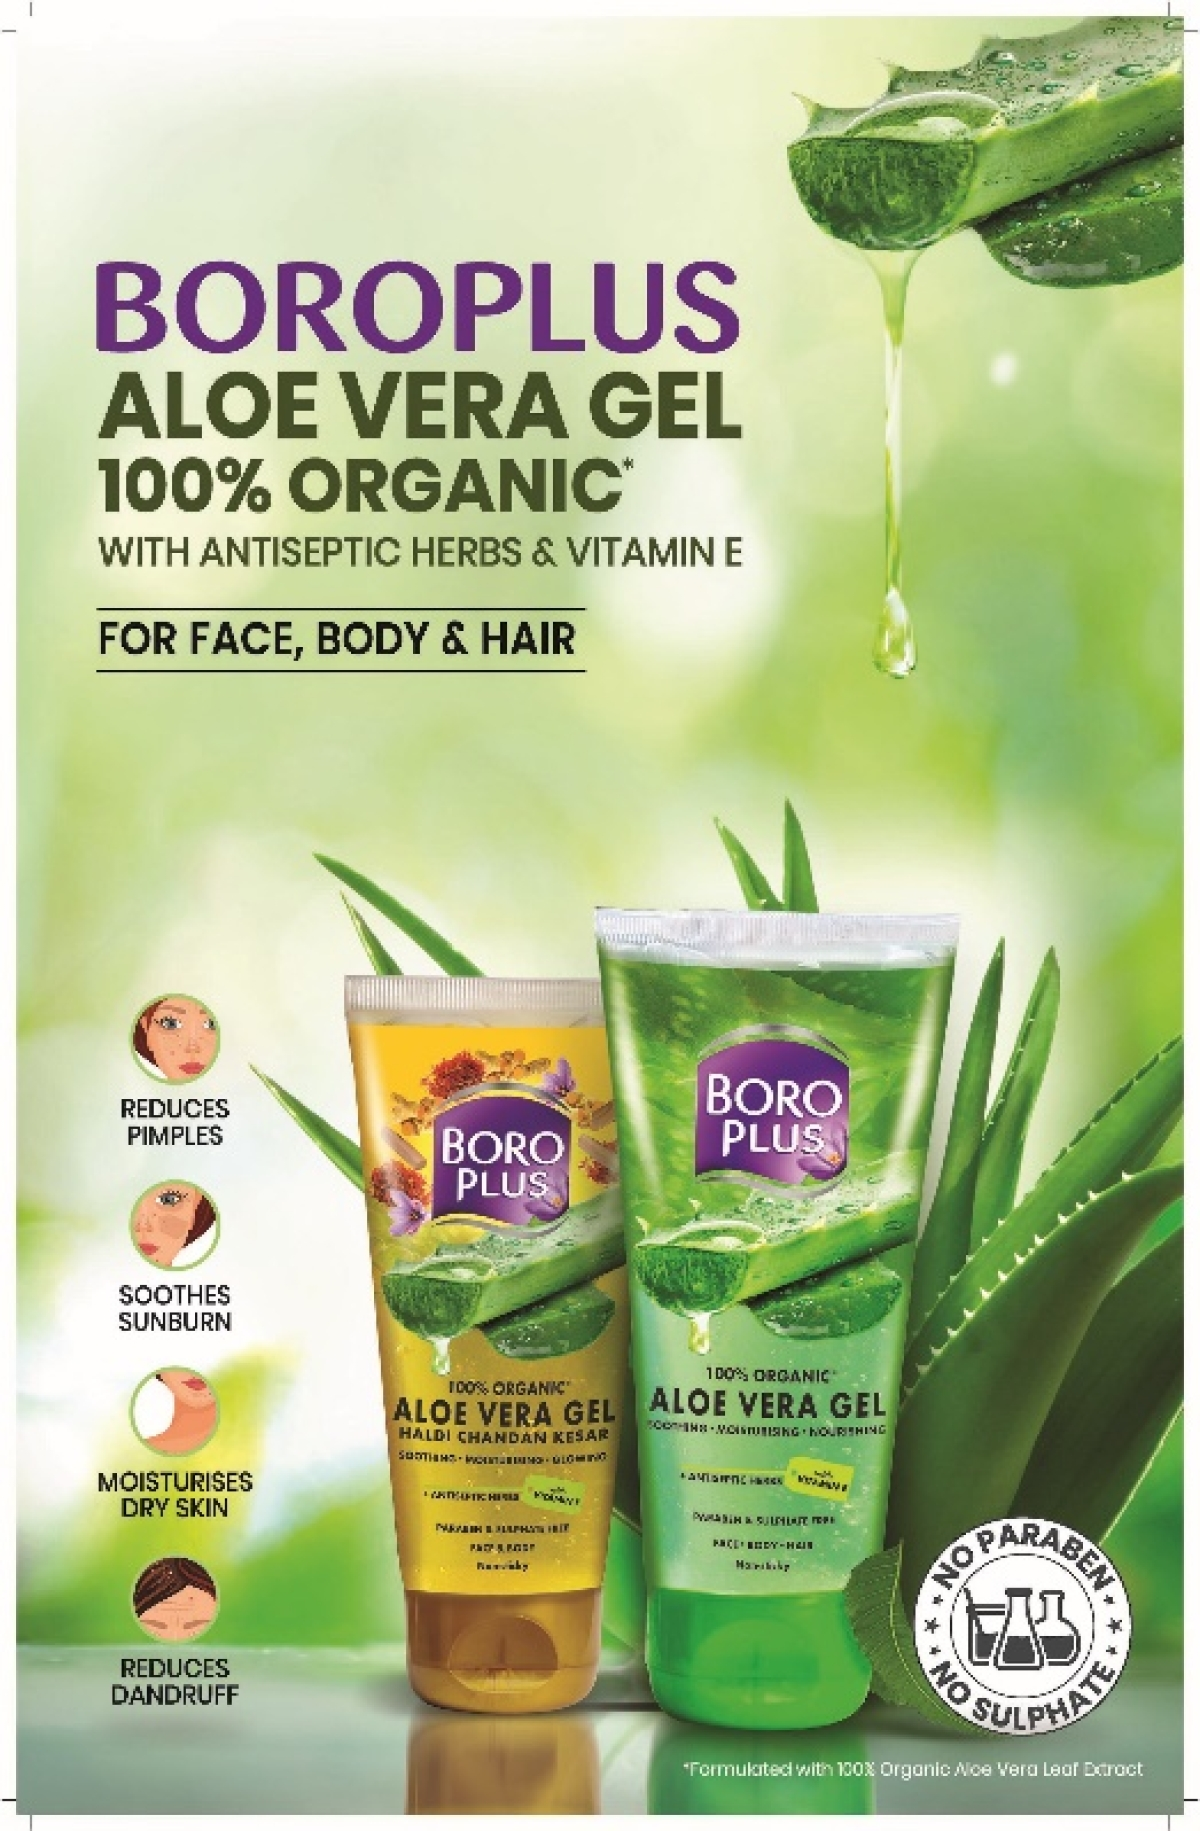 Emami launches BoroPlus Organic Aloe Vera Gel